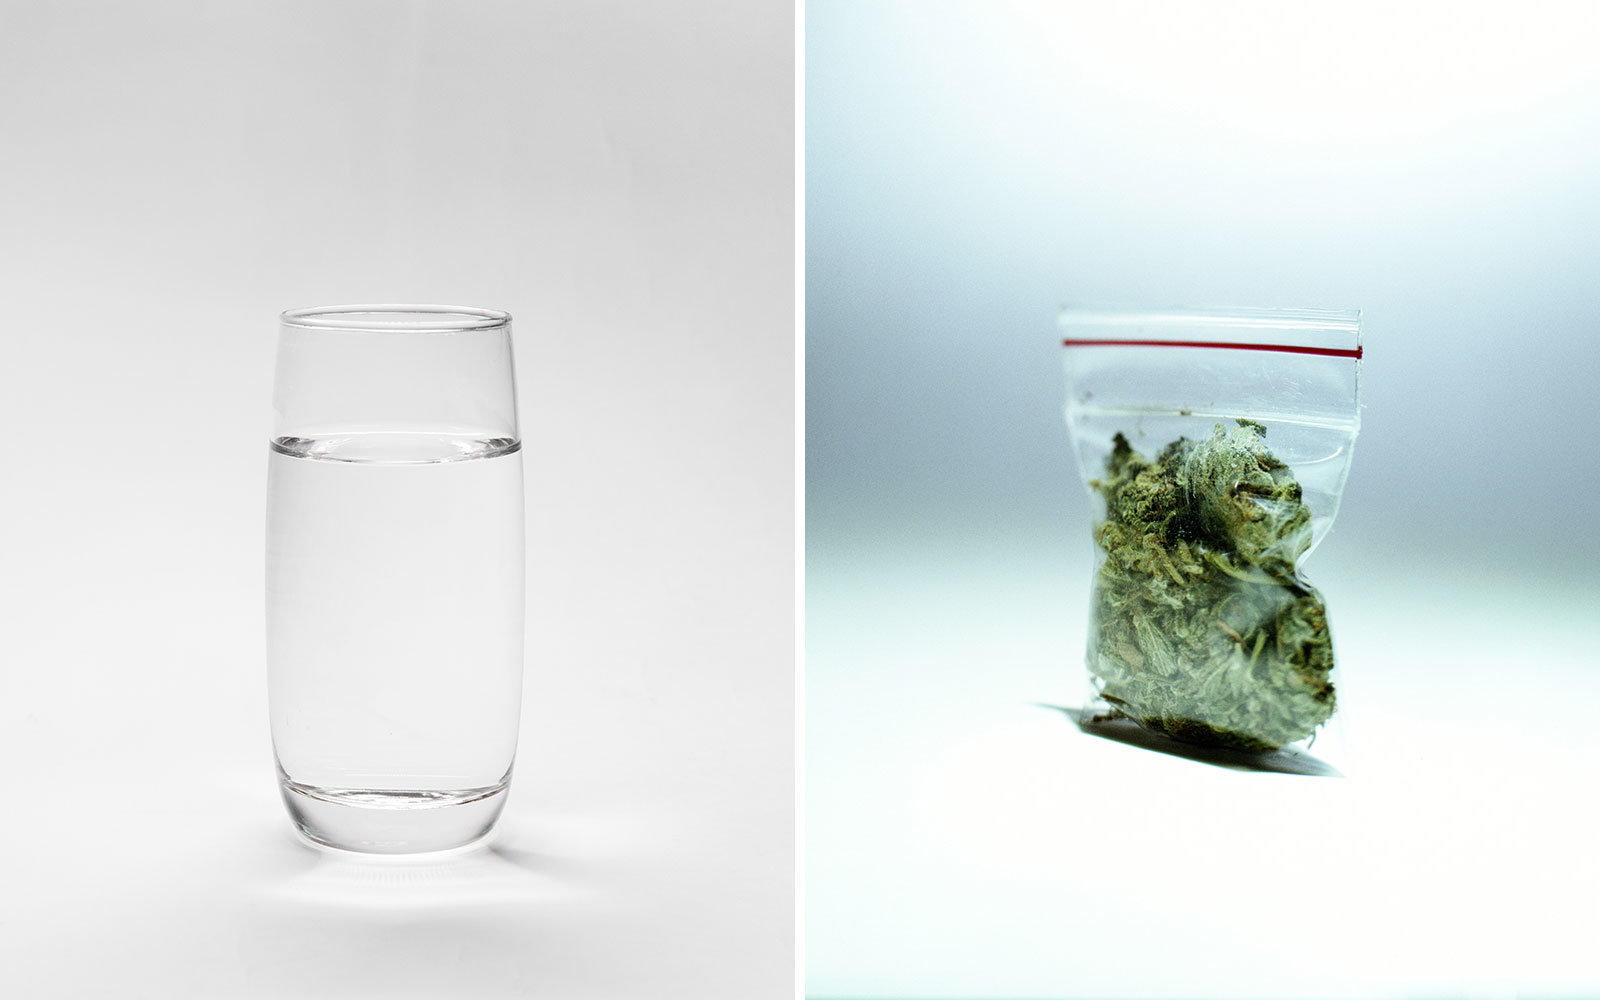 Cannabis Enhanced Water May Be Coming to a Pot-Friendly State Near You